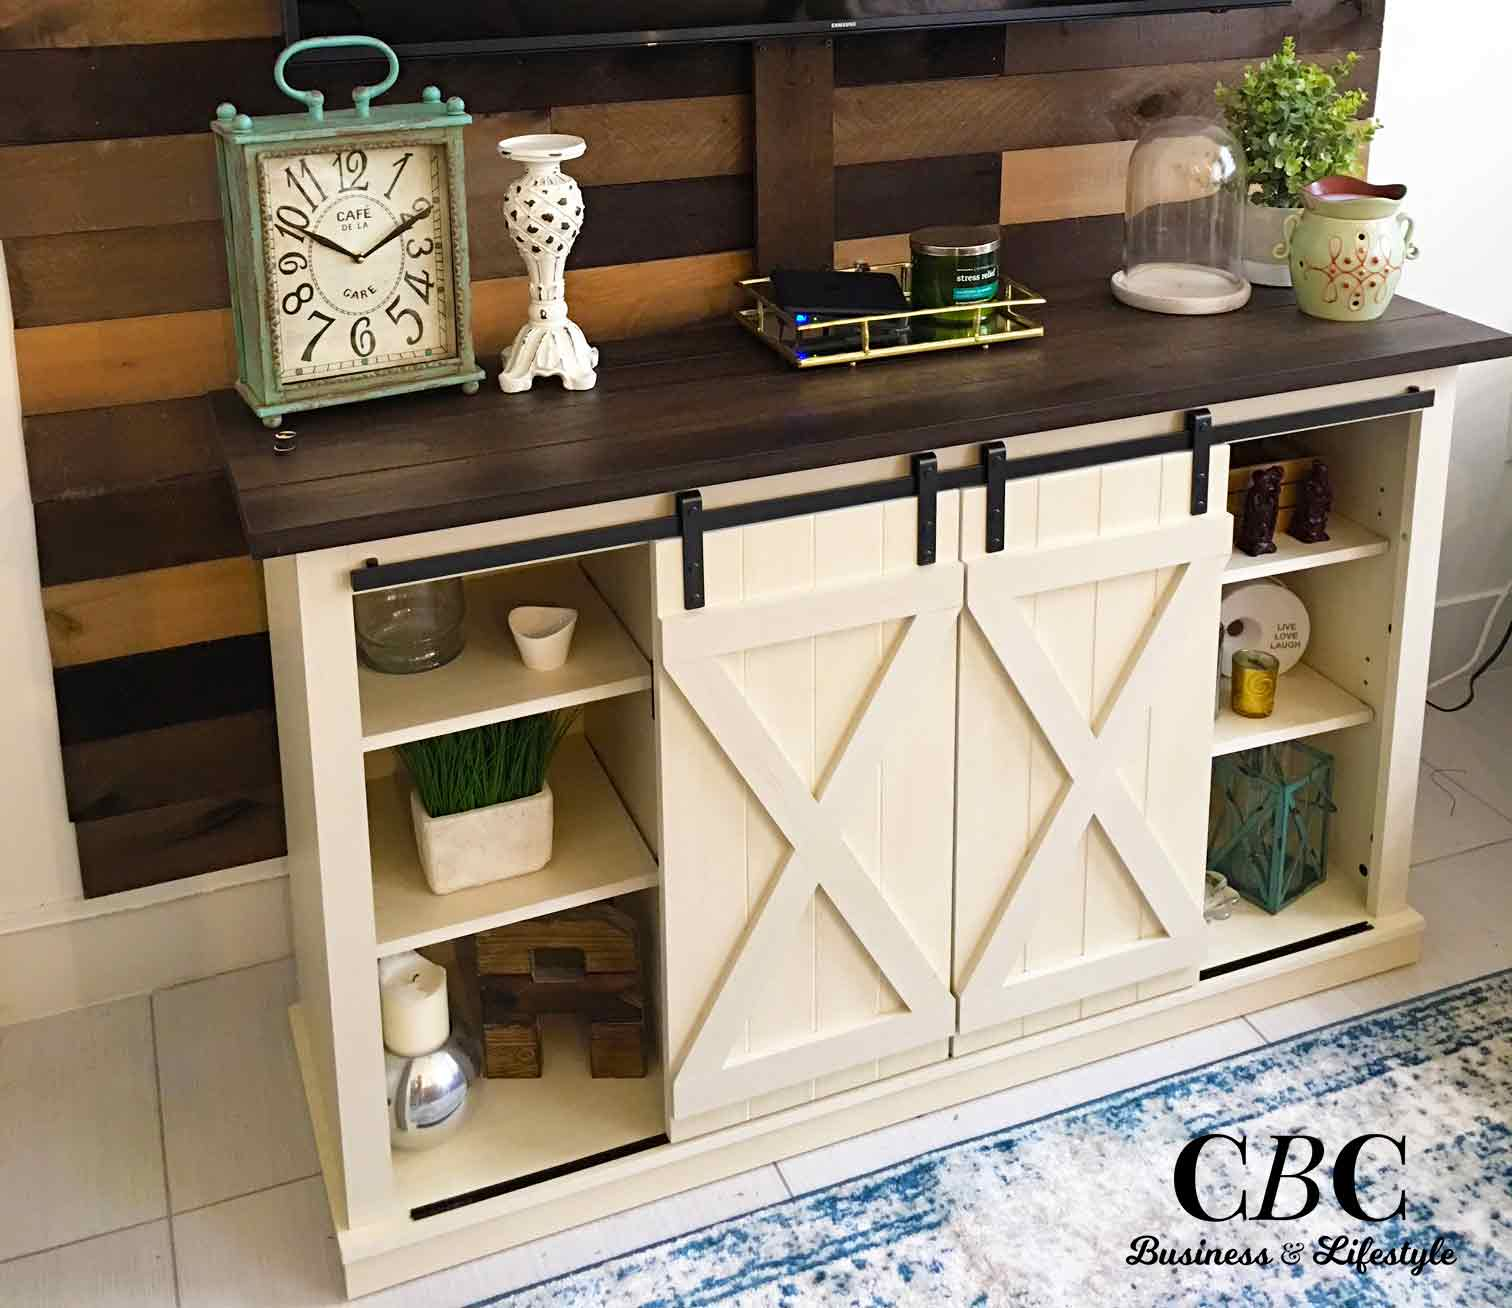 Styling-tips-Capucines-Business-Corner-Family-Room-Decor